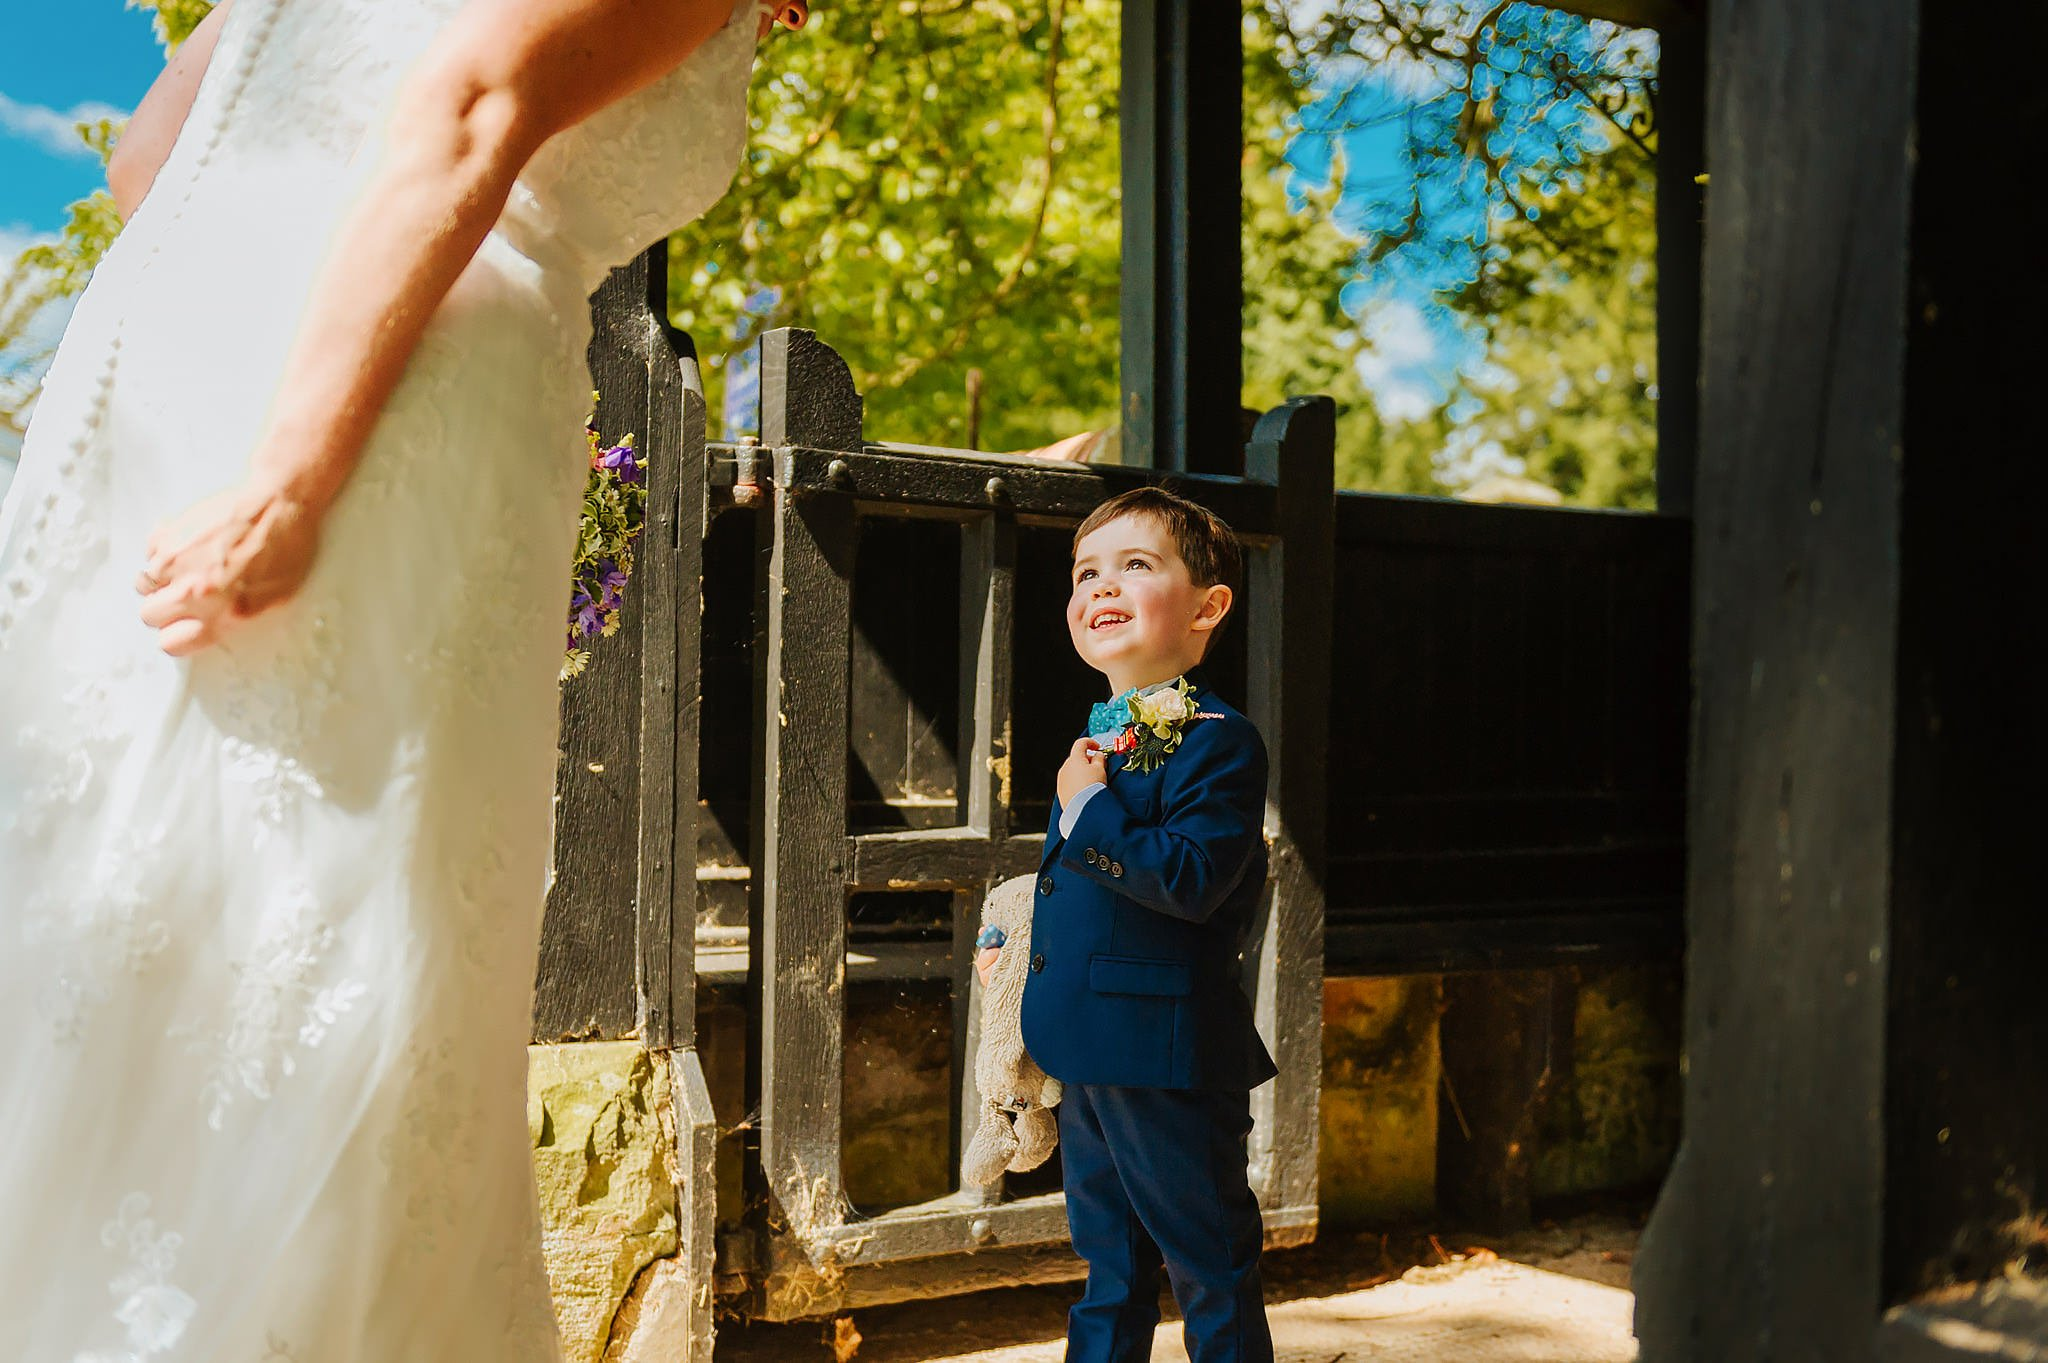 Wedding photography at Hellens Manor in Herefordshire, West Midlands | Shelley + Ian 26